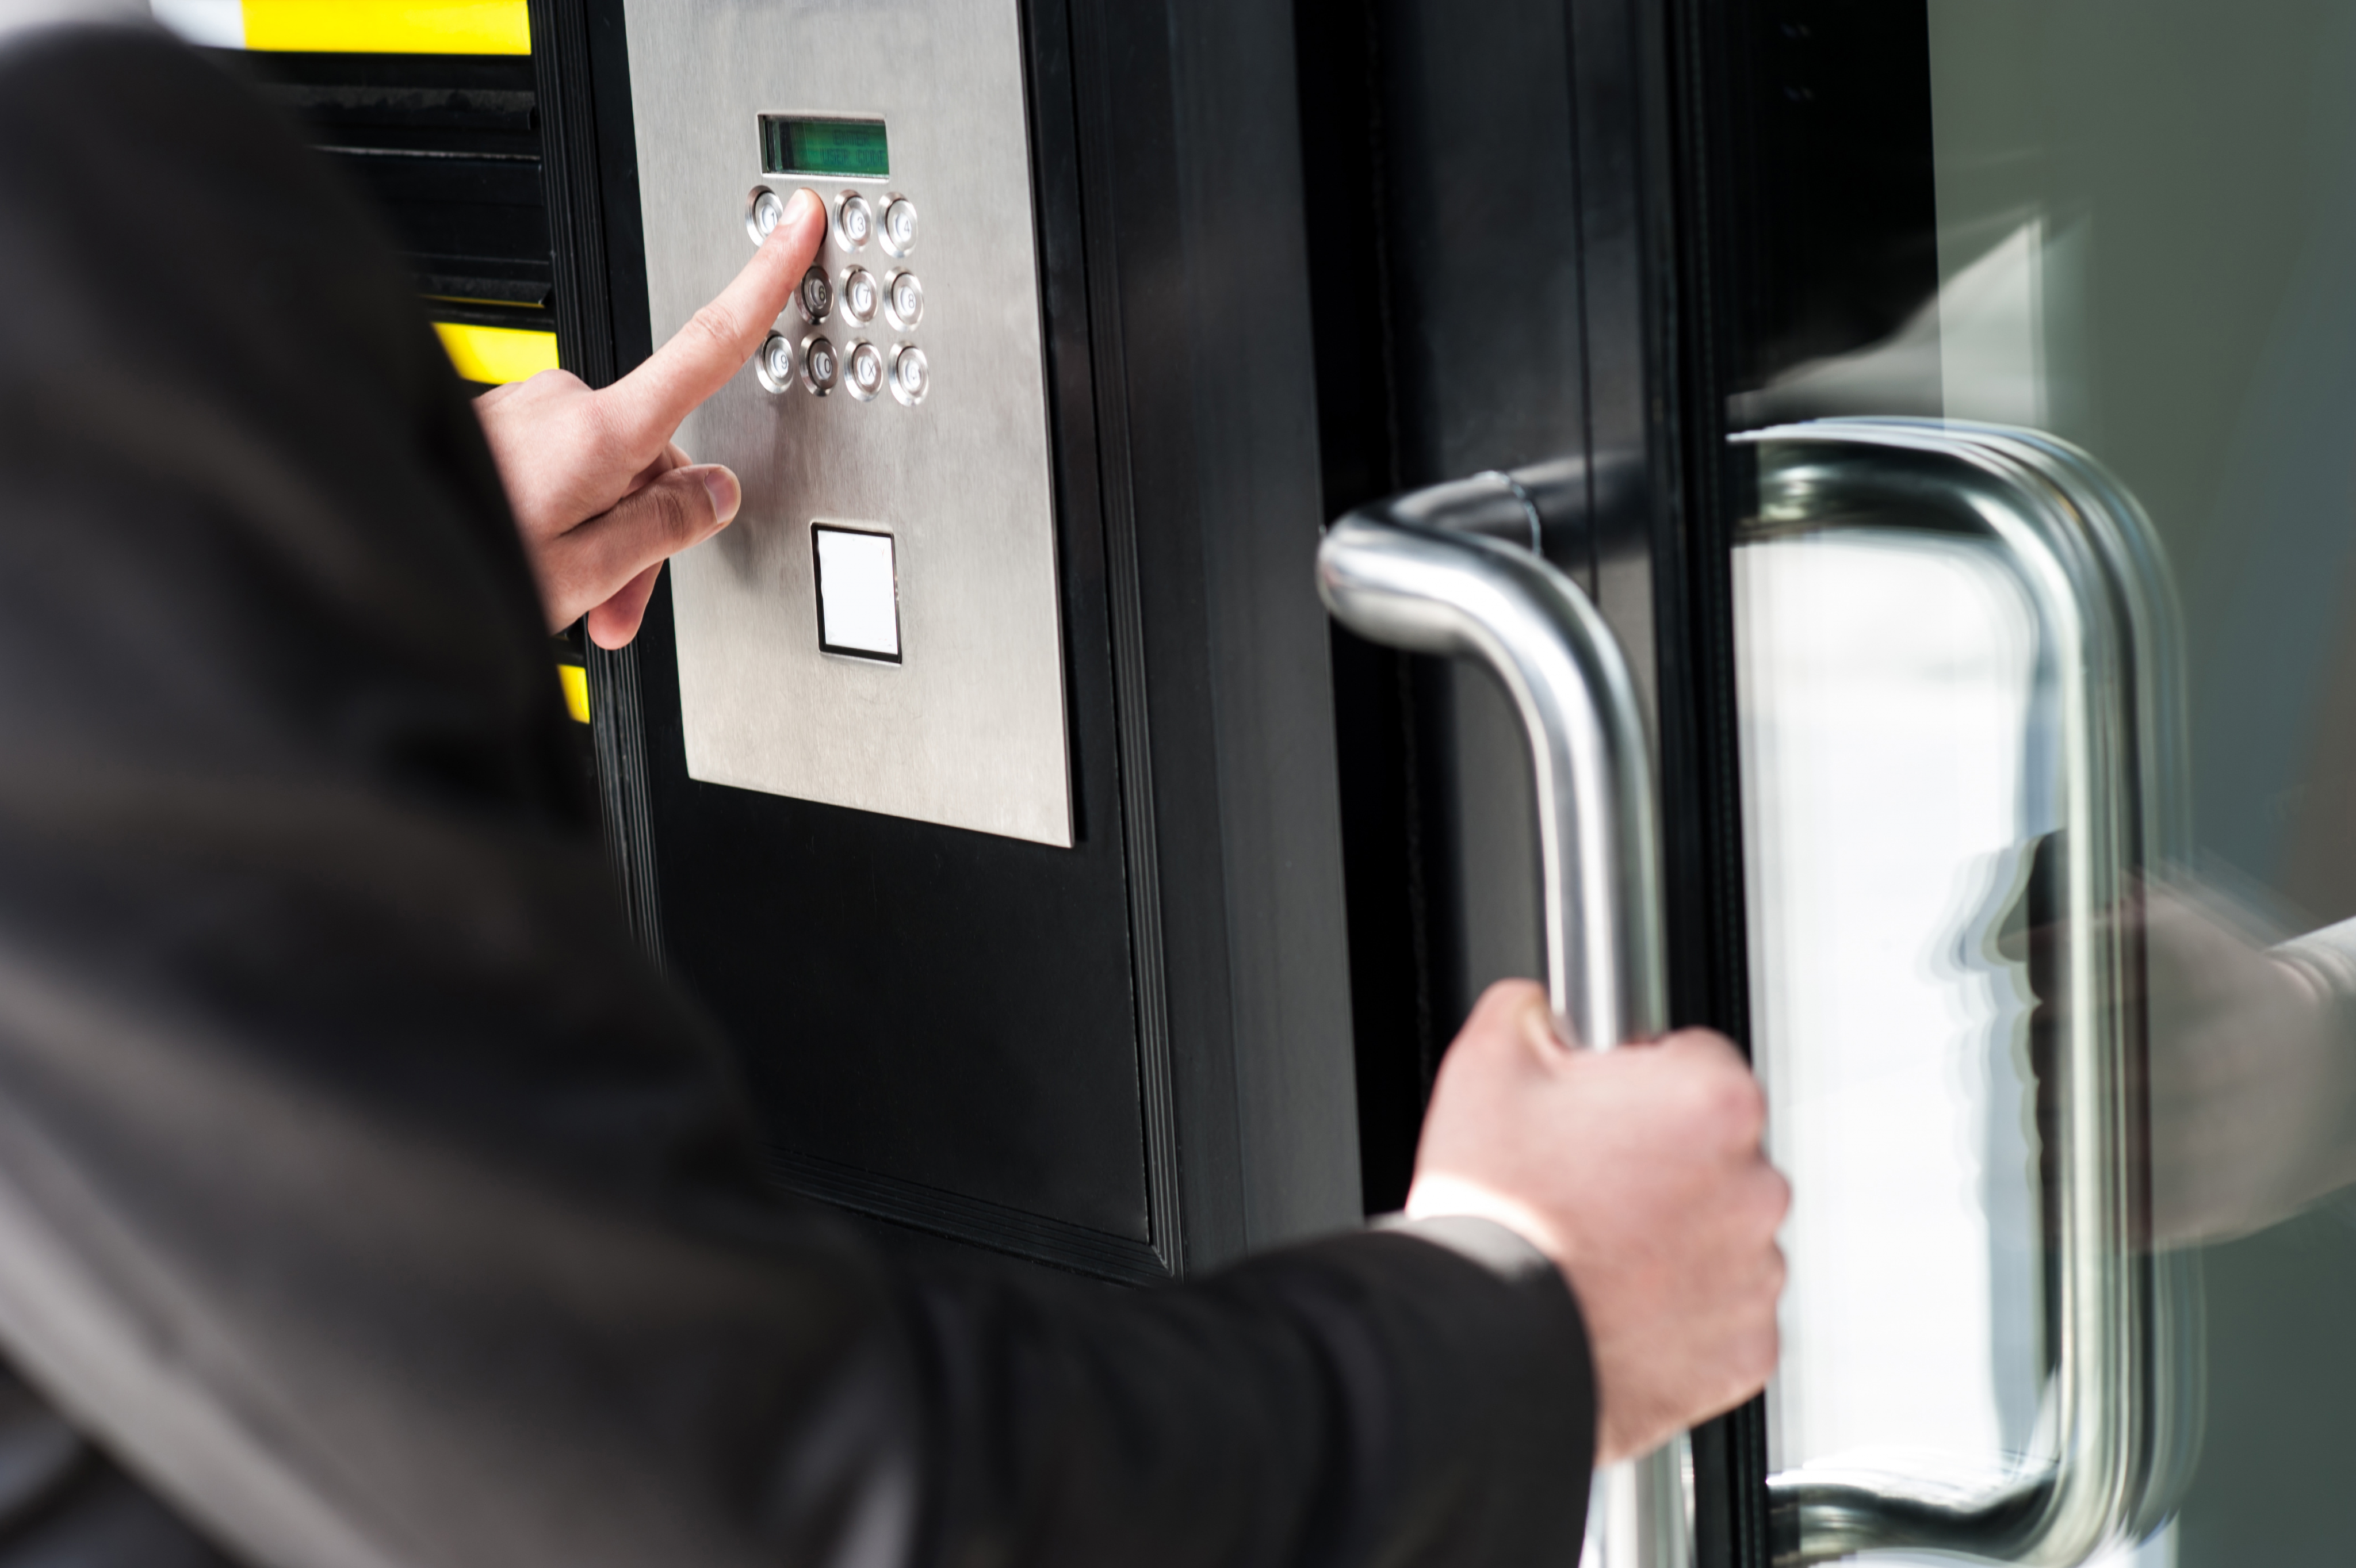 get keyless locks for your commercial business save time and money. Edmonton Locksmith